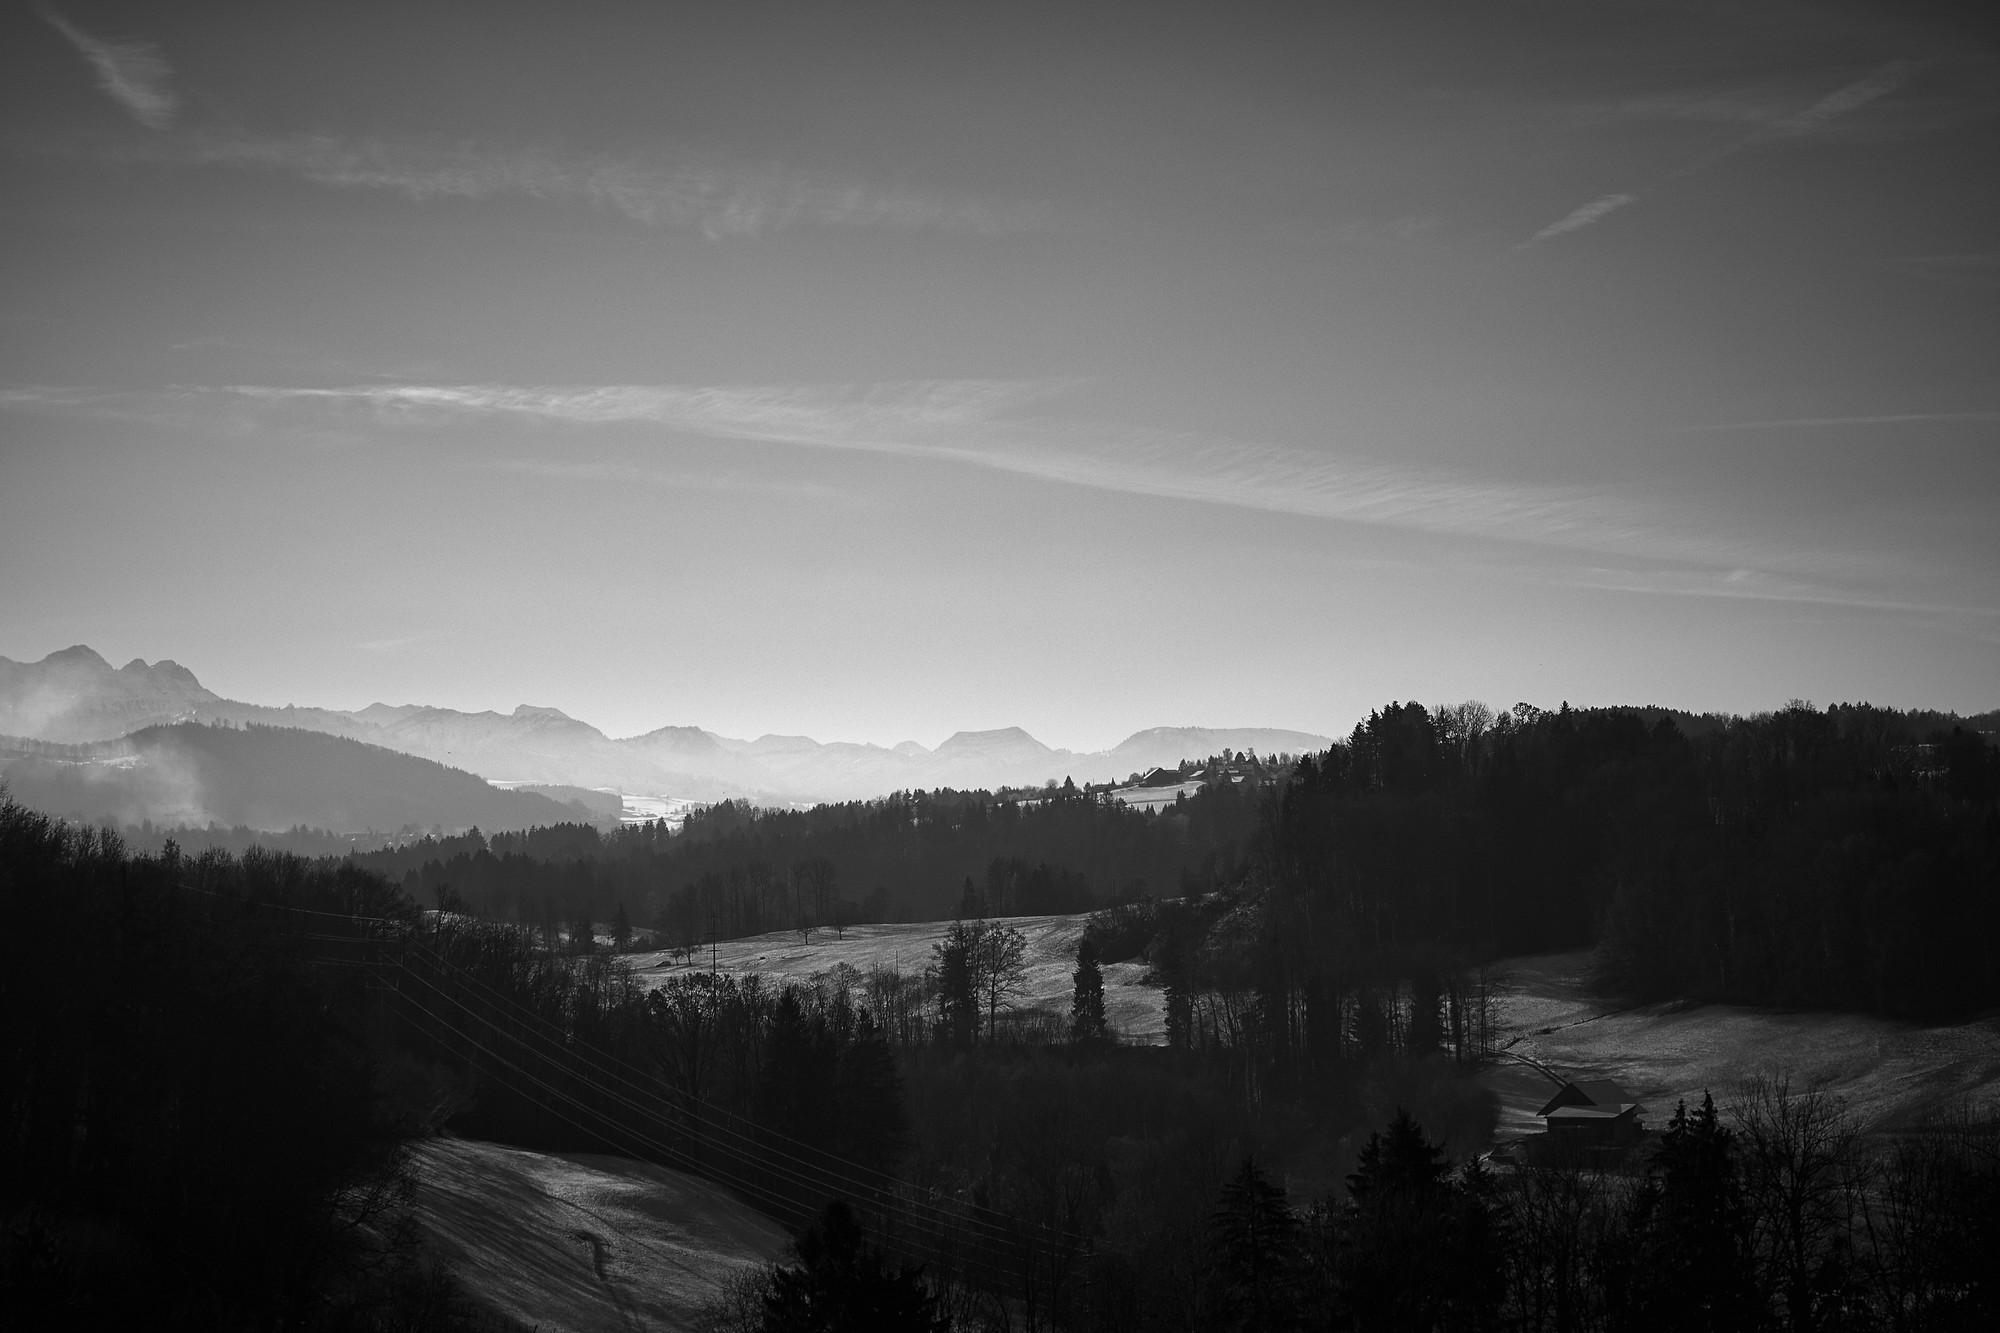 Black And White Landscapes Mountains Trees Winter Hd Wallpaper